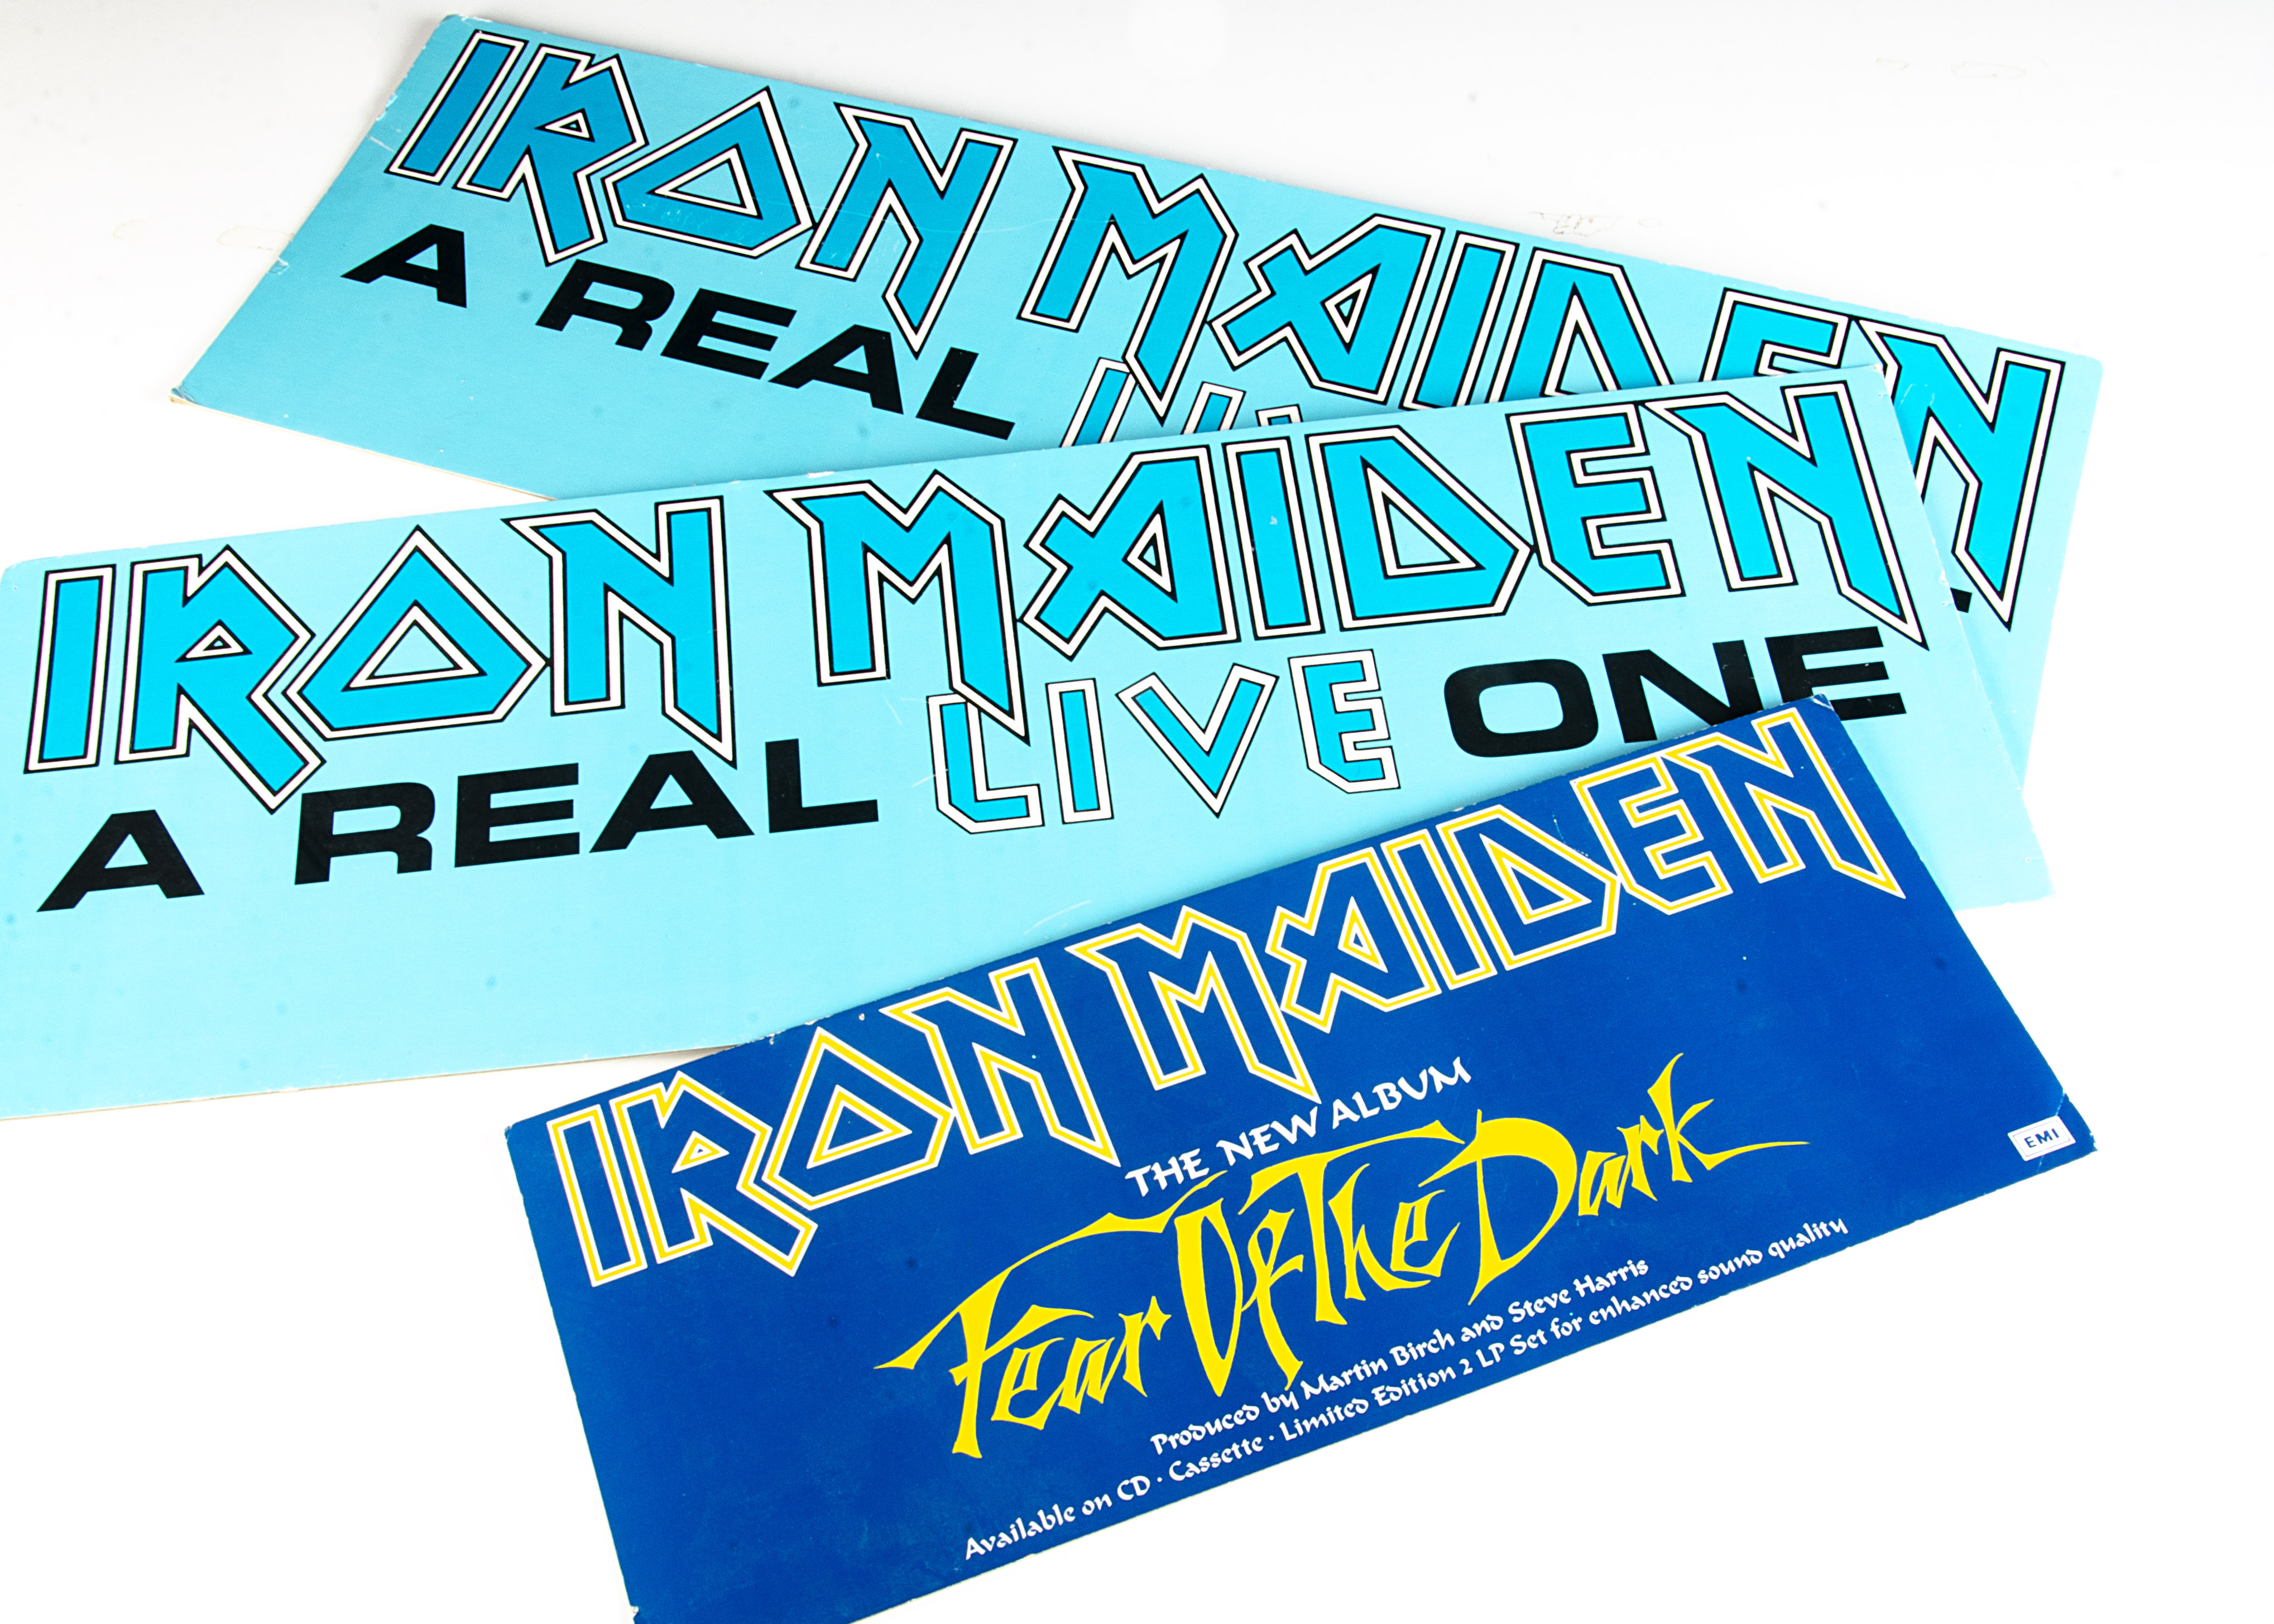 Iron Maiden Store Displays, three original card shop displays comprising two for A Real Live one and